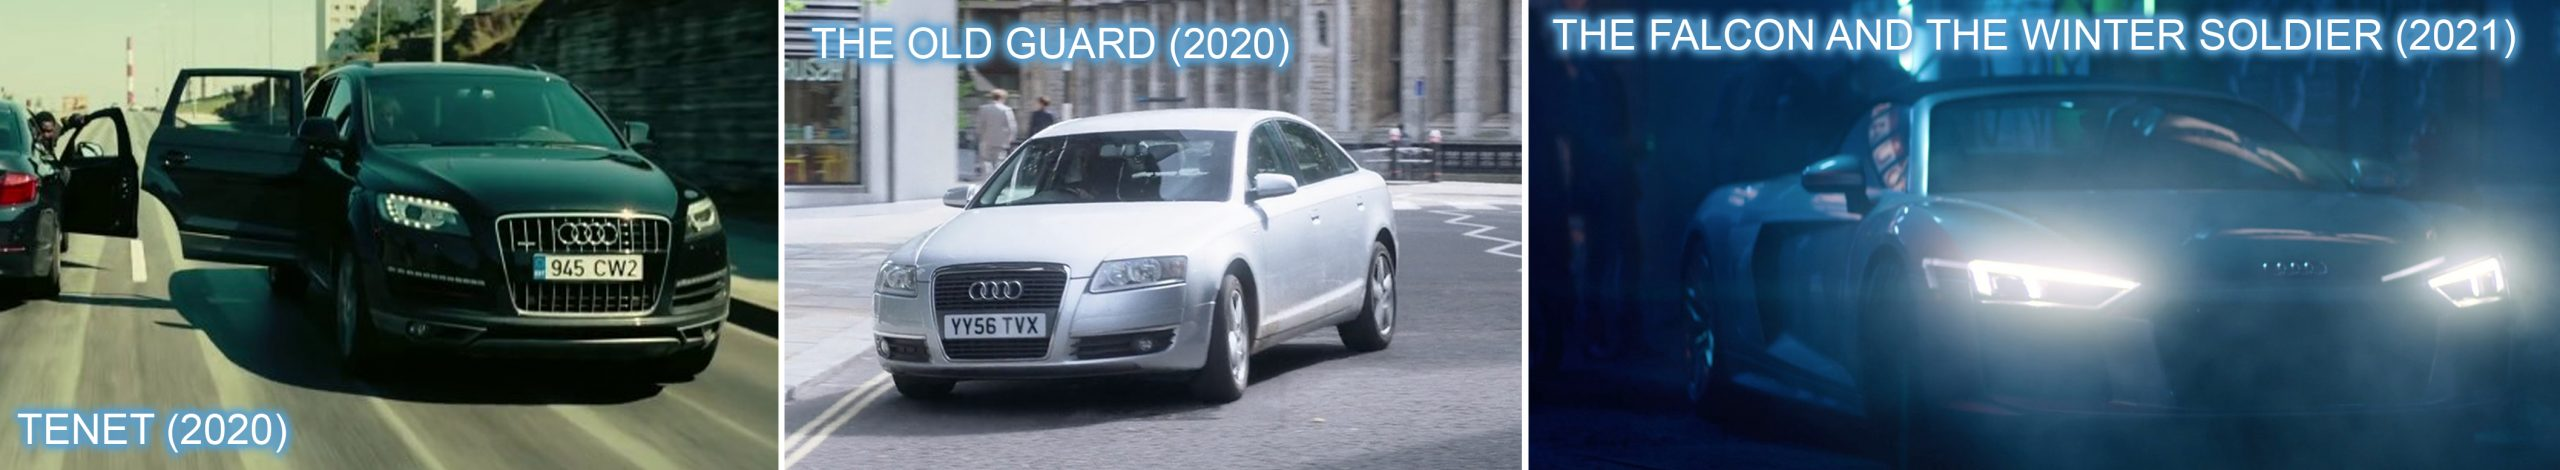 Audi product placement in TENET, THE OLD GUARD and THE FALCON AND THE WINTER SOLDIER.